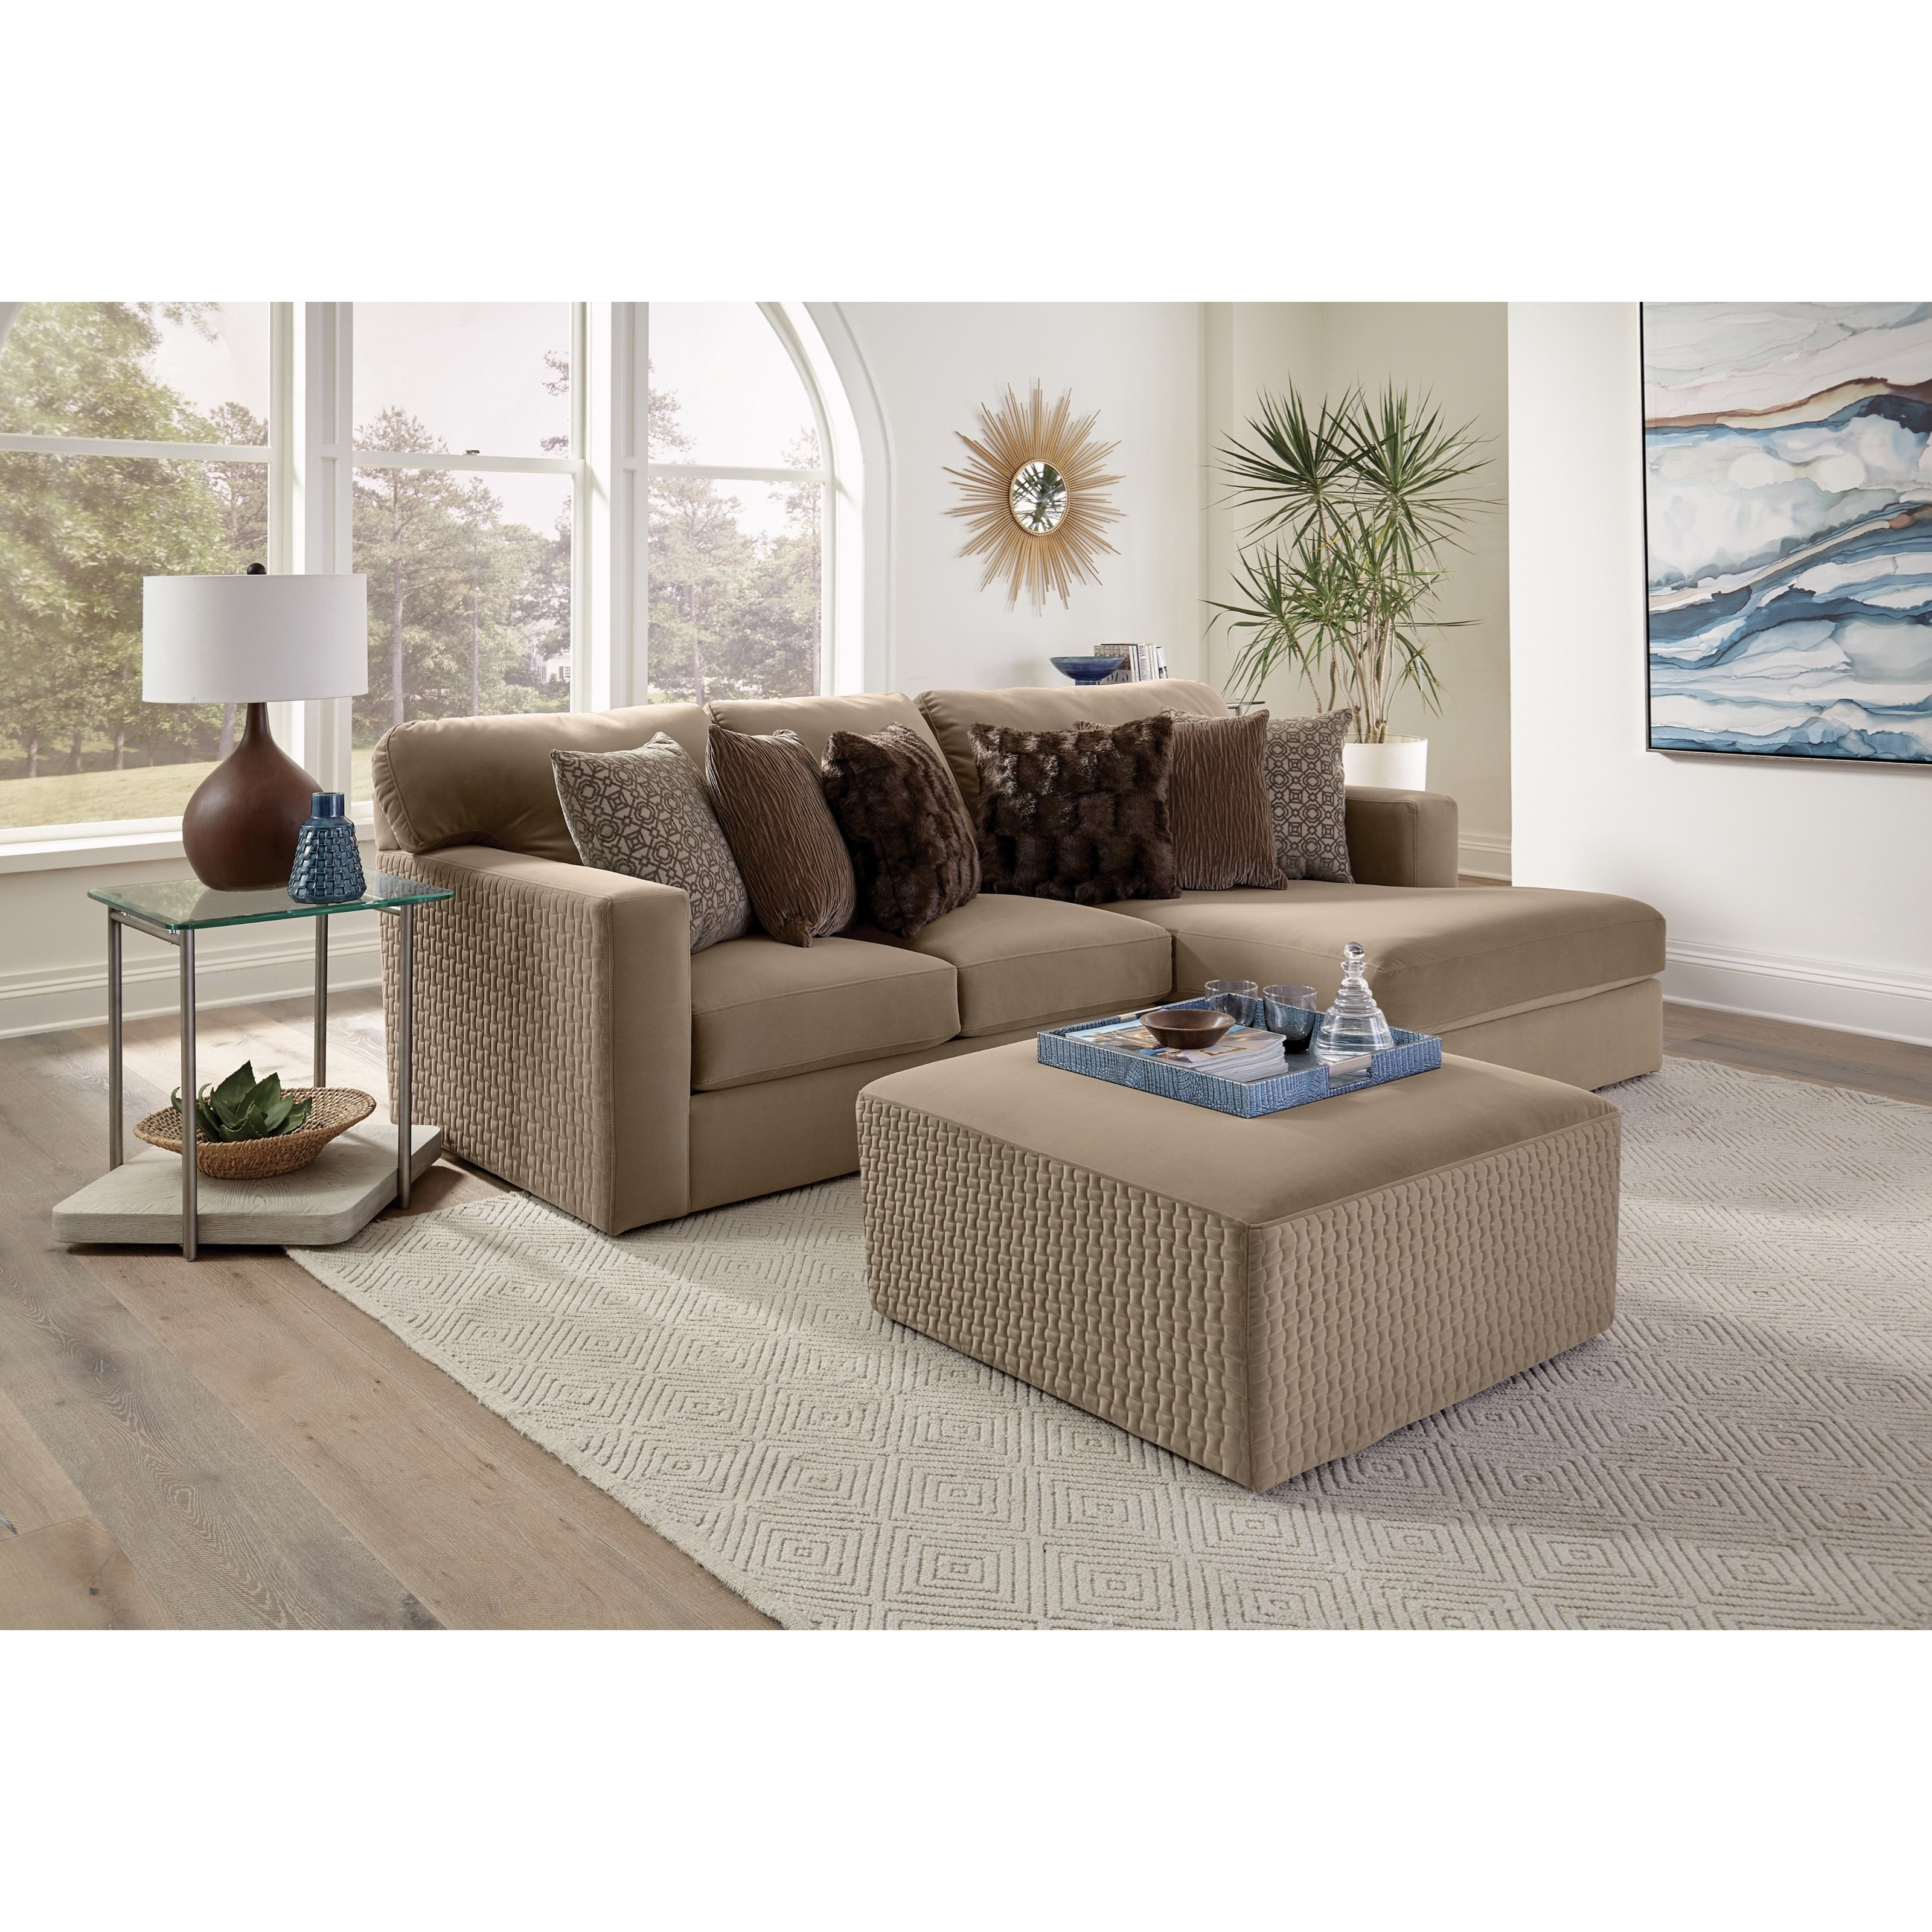 Carlsbad Living Room Group by Jackson Furniture at Northeast Factory Direct